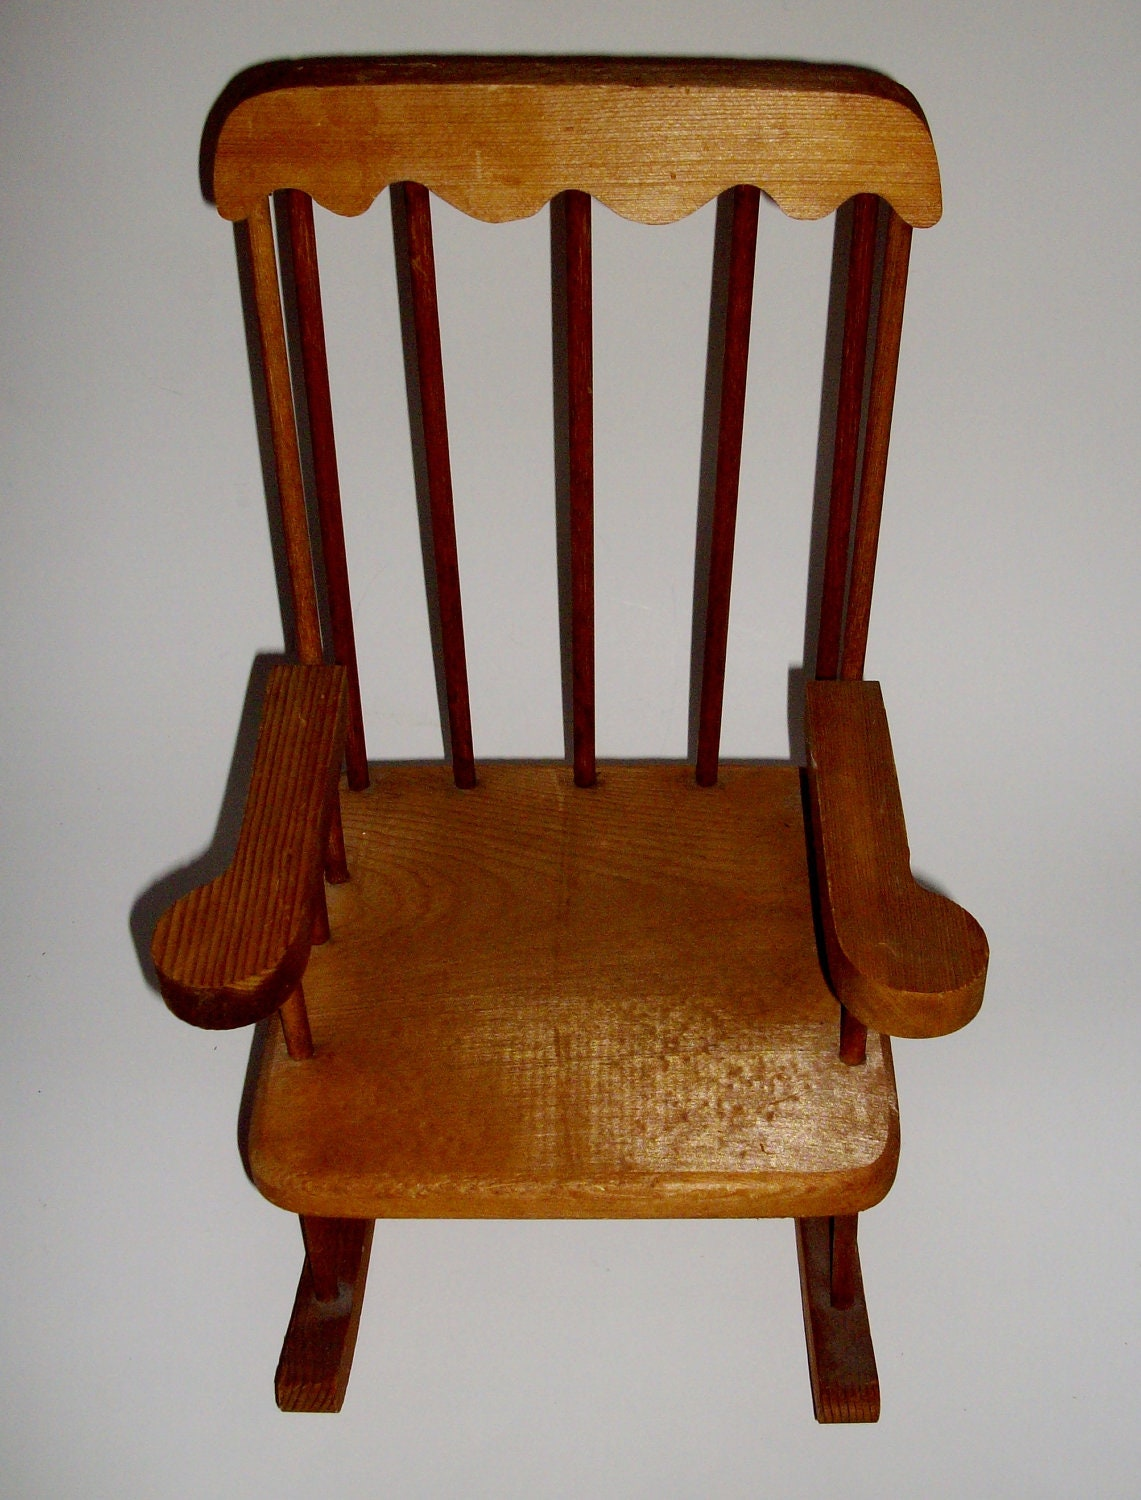 Antique wooden rocking chair submited images pic2fly